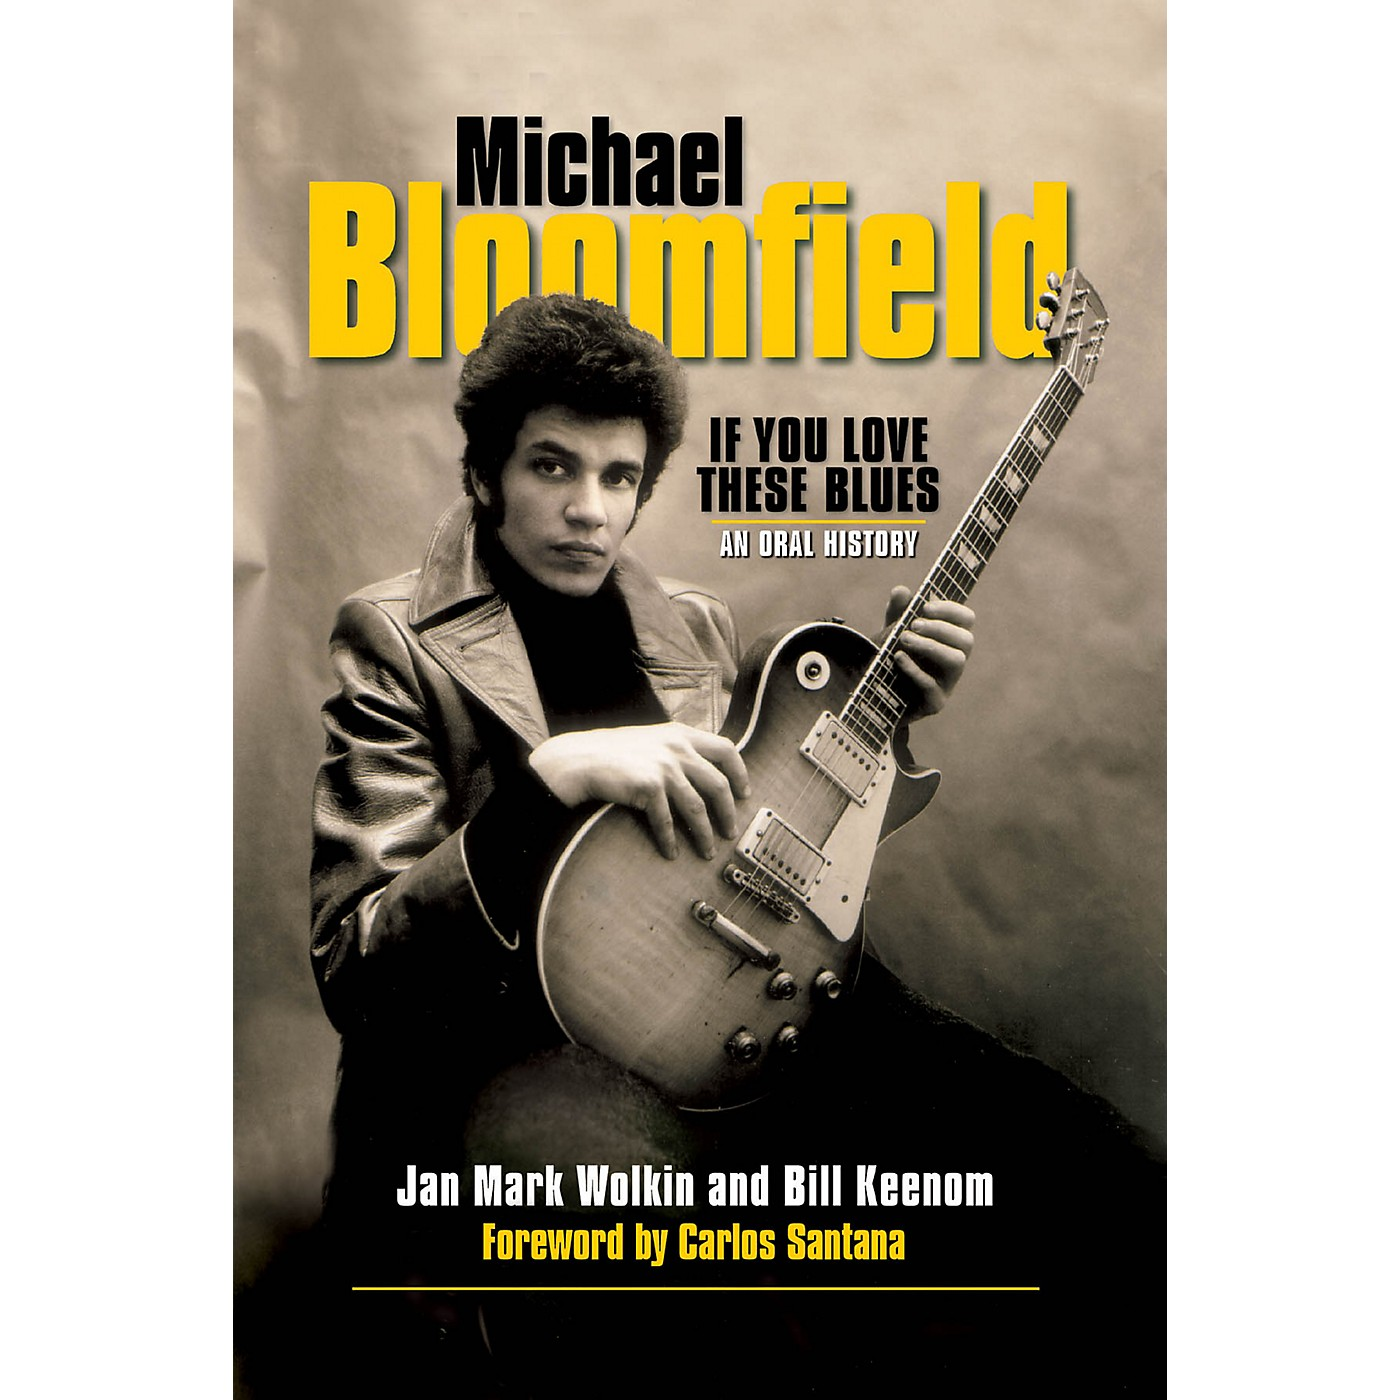 Backbeat Books Michael Bloomfield - If You Love These Blues (An Oral History) Book Series Softcover by Jan Mark Wolkin thumbnail